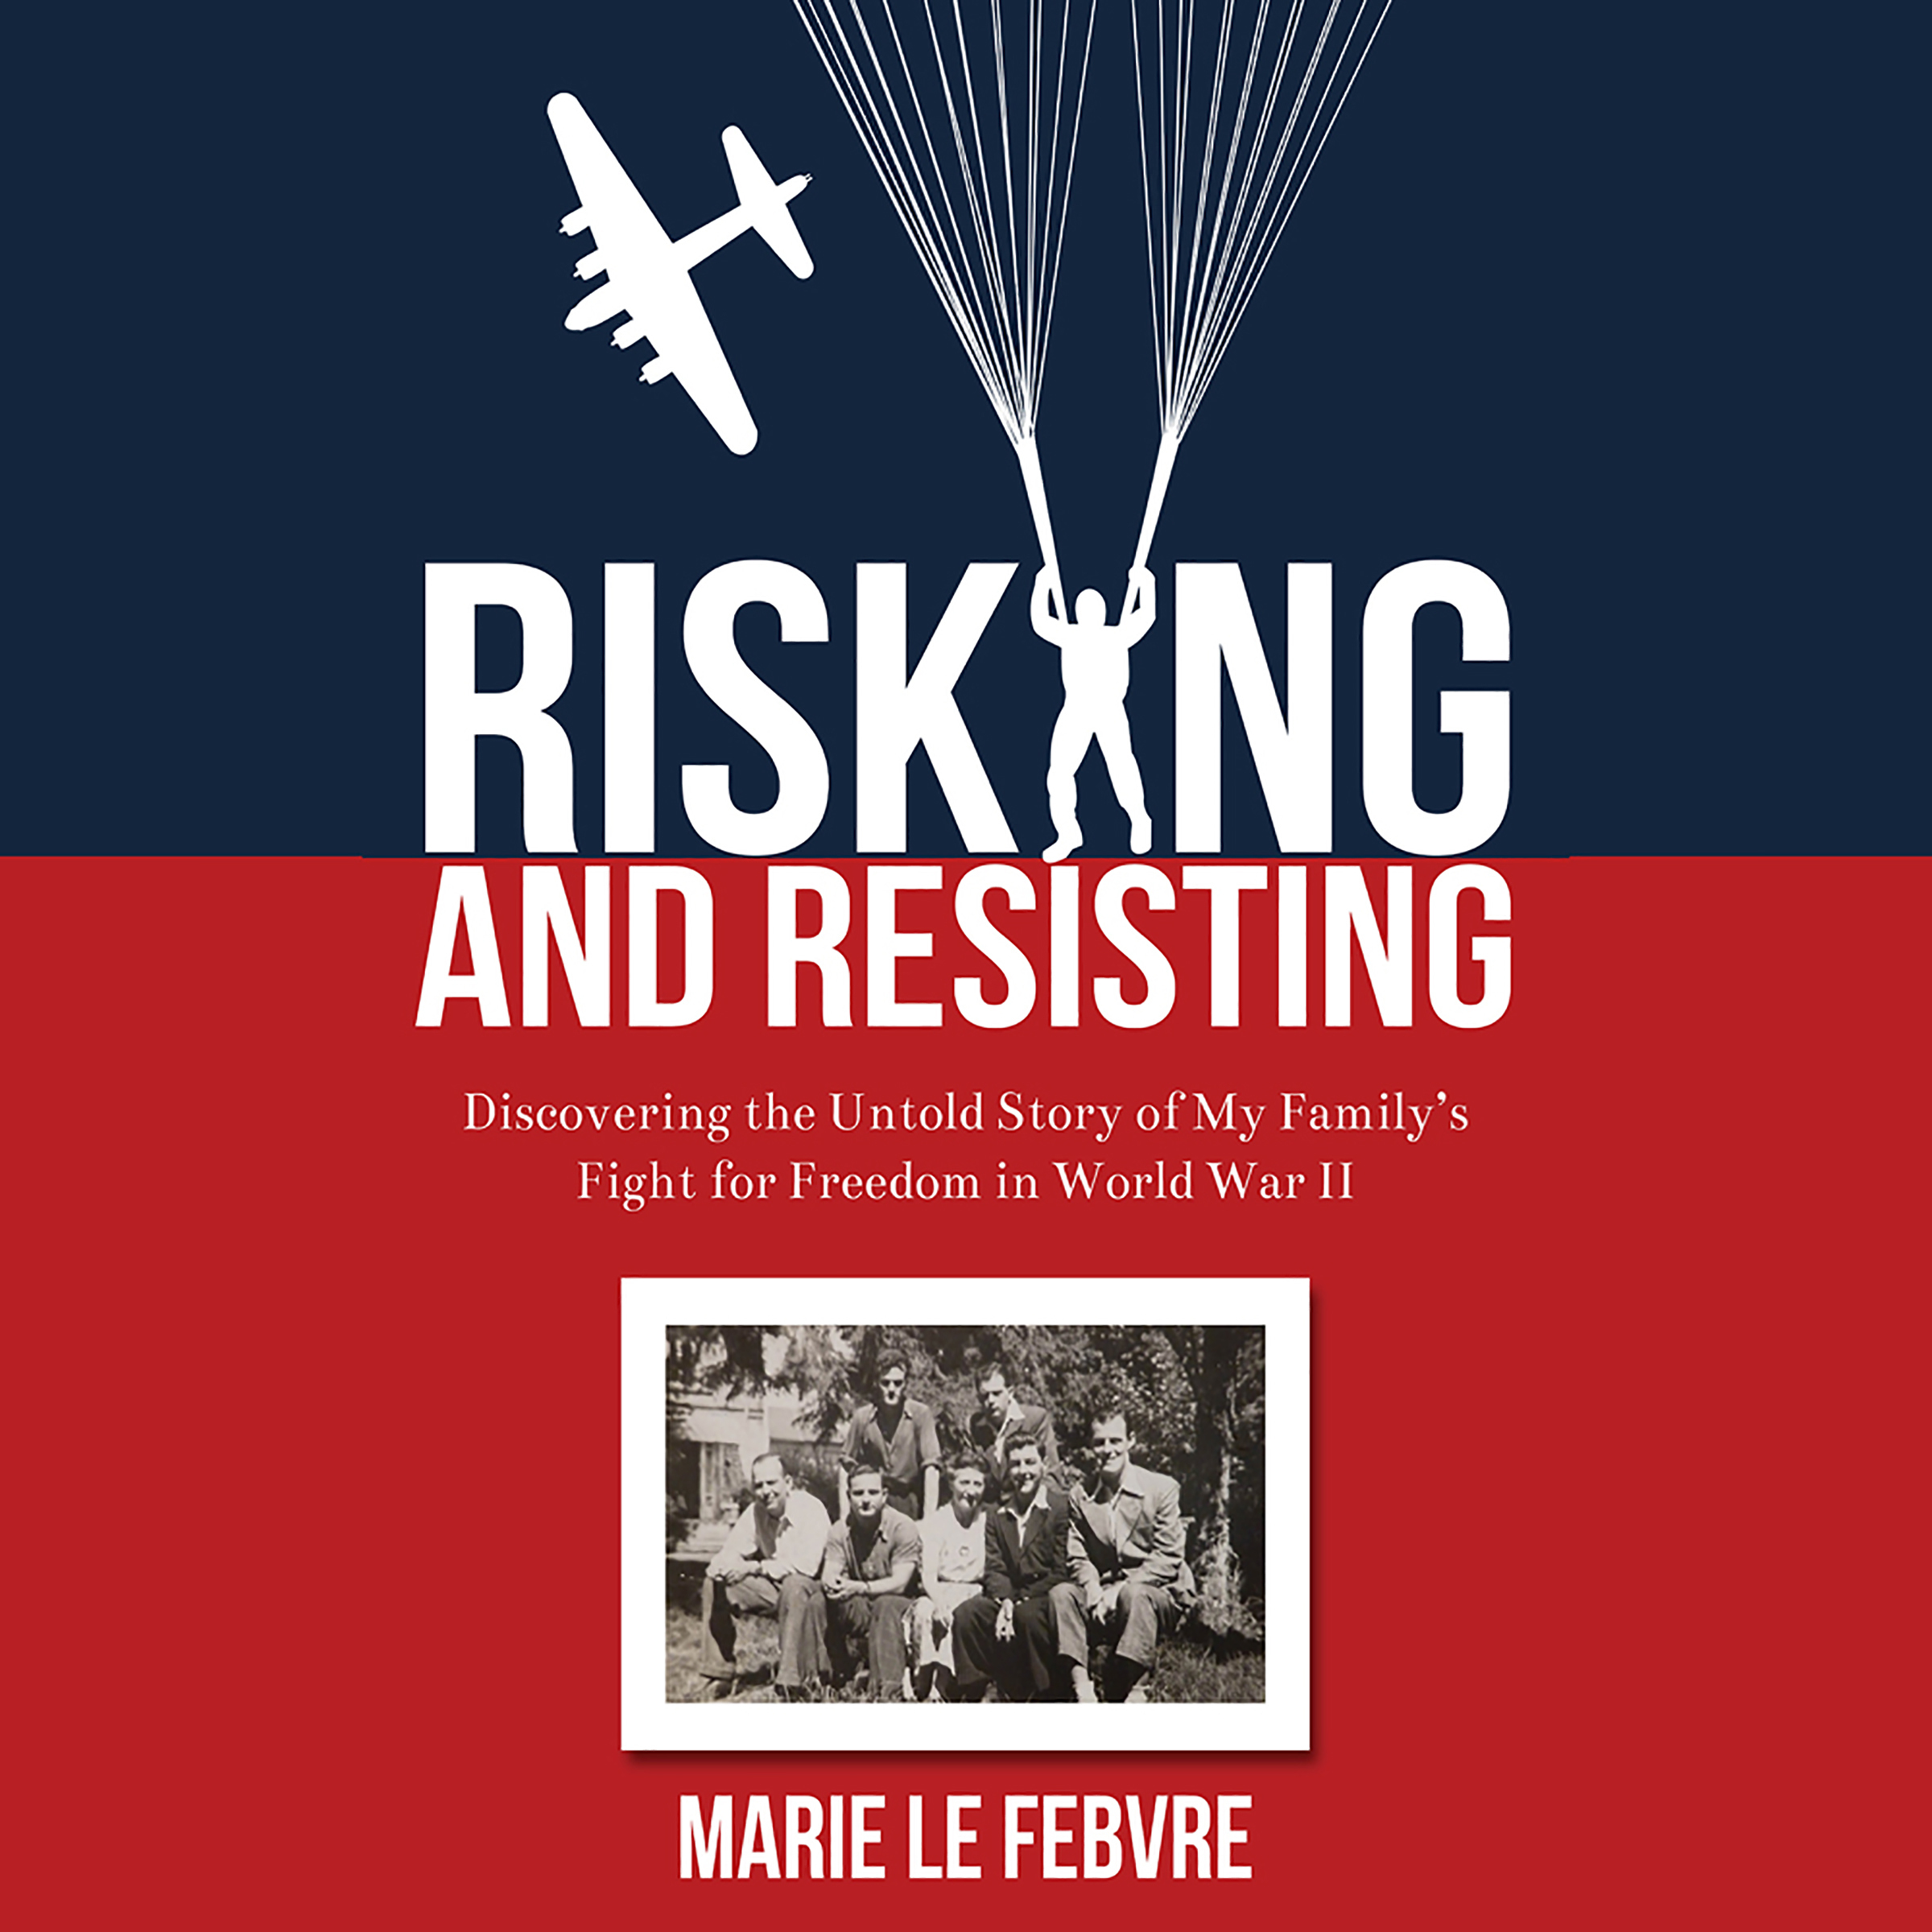 Printable Risking and Resisting: Discovering the Untold Story of My Family's Fight for Freedom in World War II: Discovering the Untold Story of My Family's Fight for Freedom in World War II Audiobook Cover Art